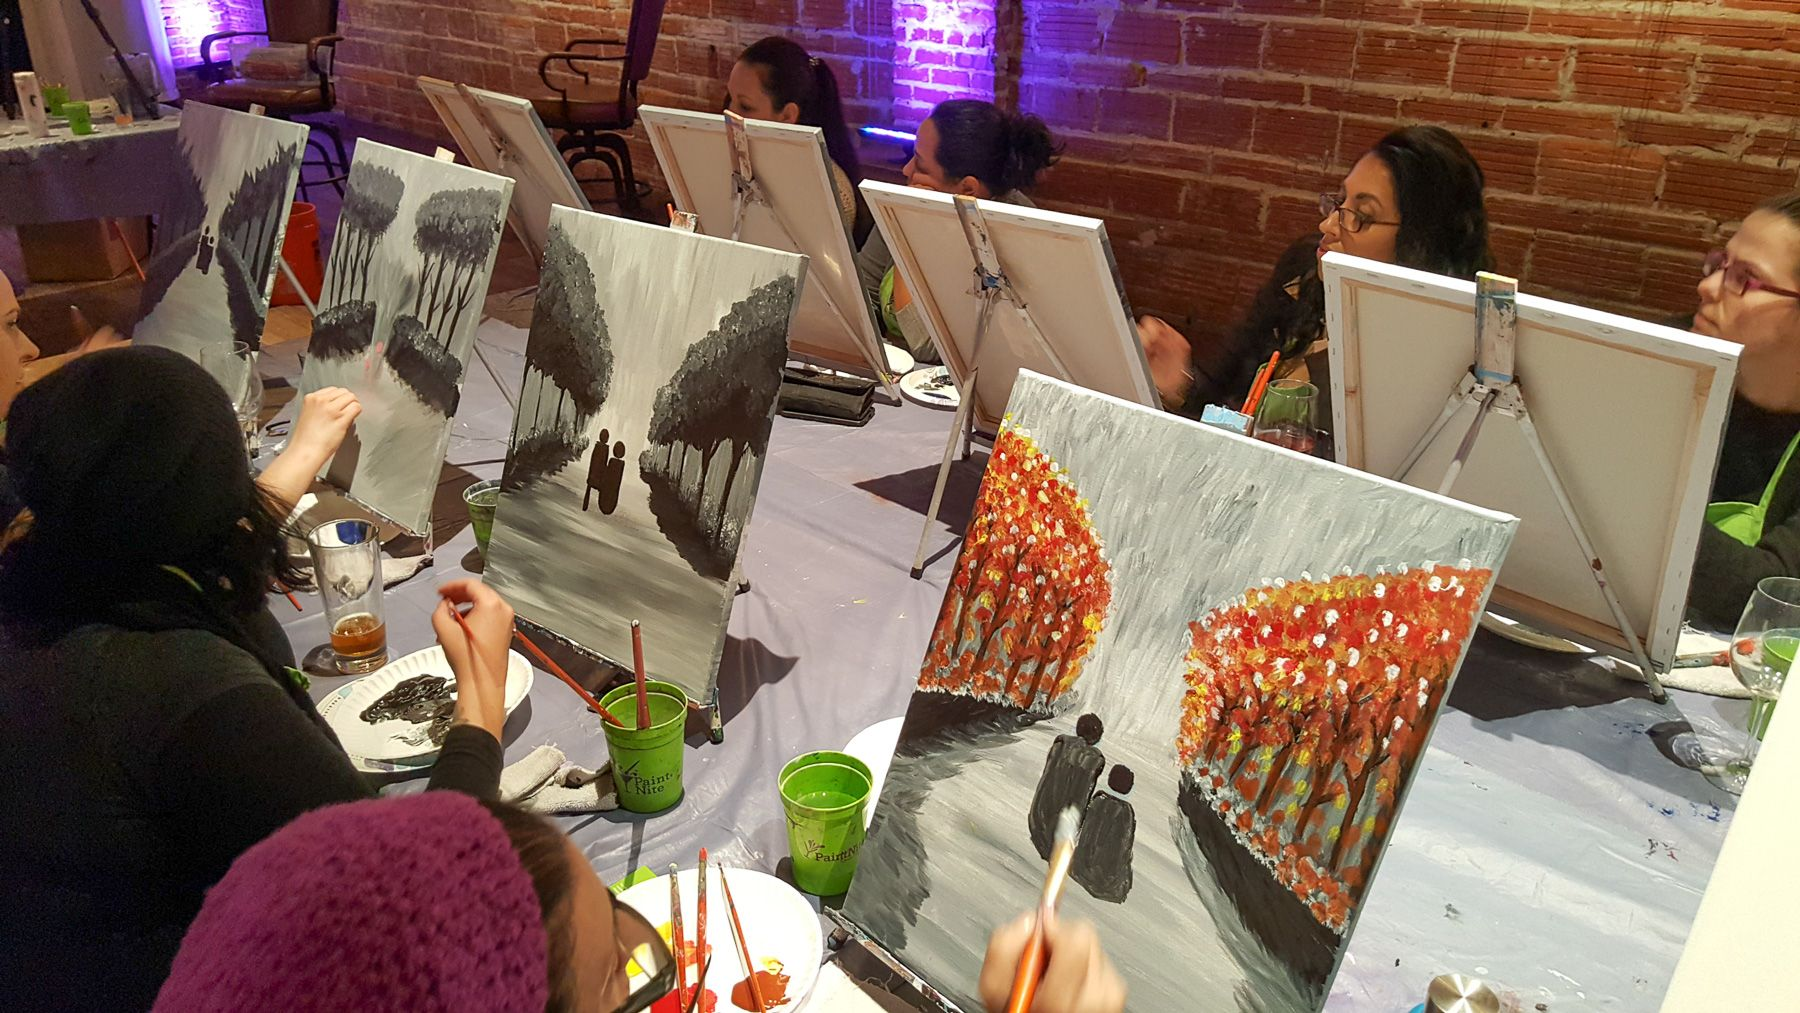 PaintNite at historic DTSP venue NOVA 535 Downtown St. Pete